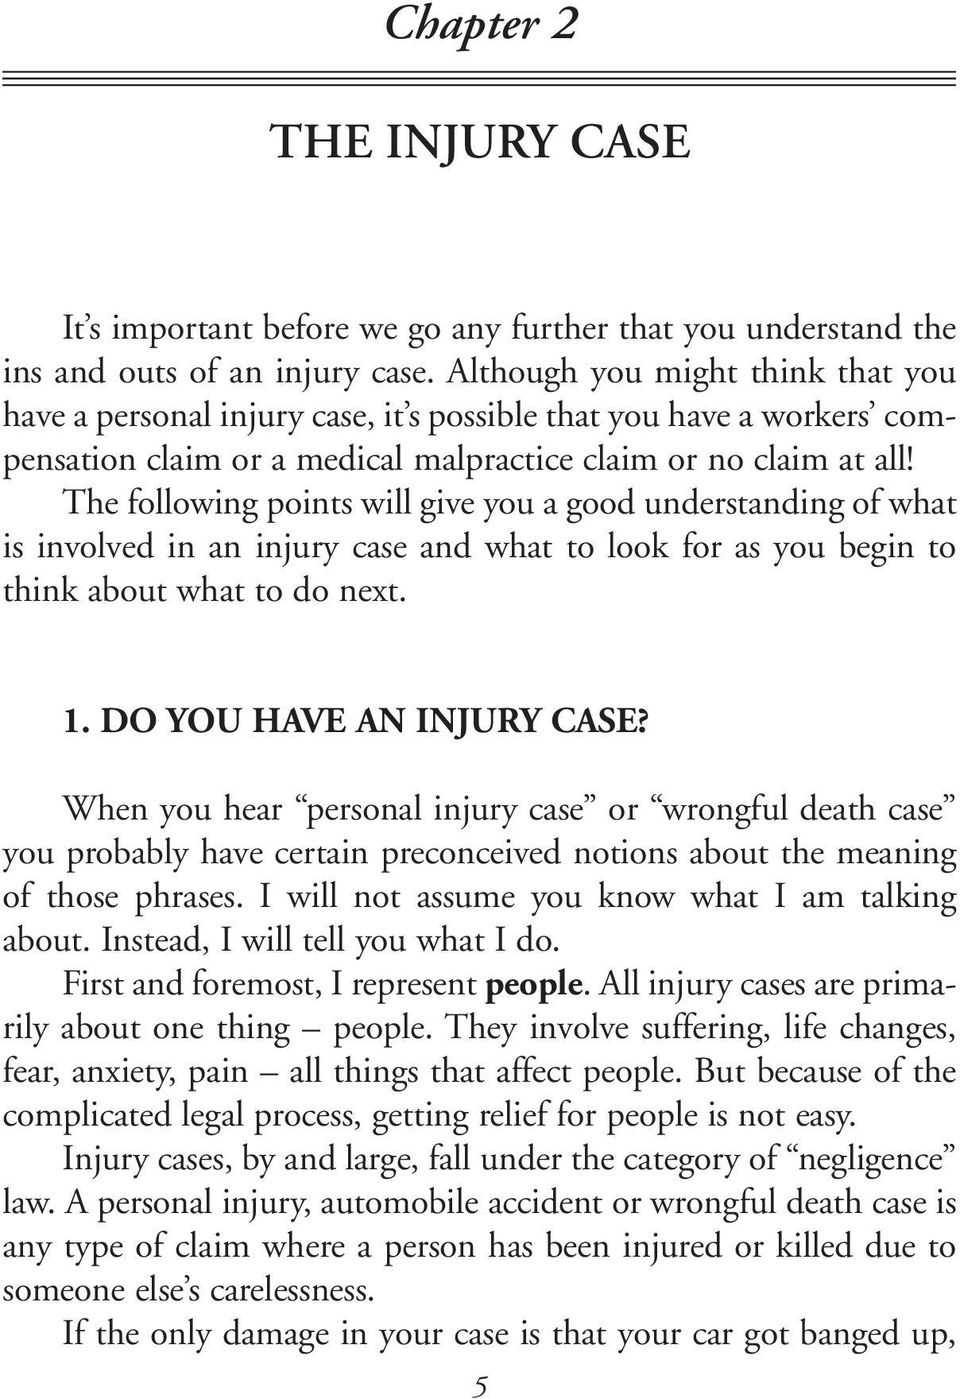 The following points will give you a good understanding of what is involved in an injury case and what to look for as you begin to think about what to do next. 1. DO YOU HAVE AN INJURY CASE?